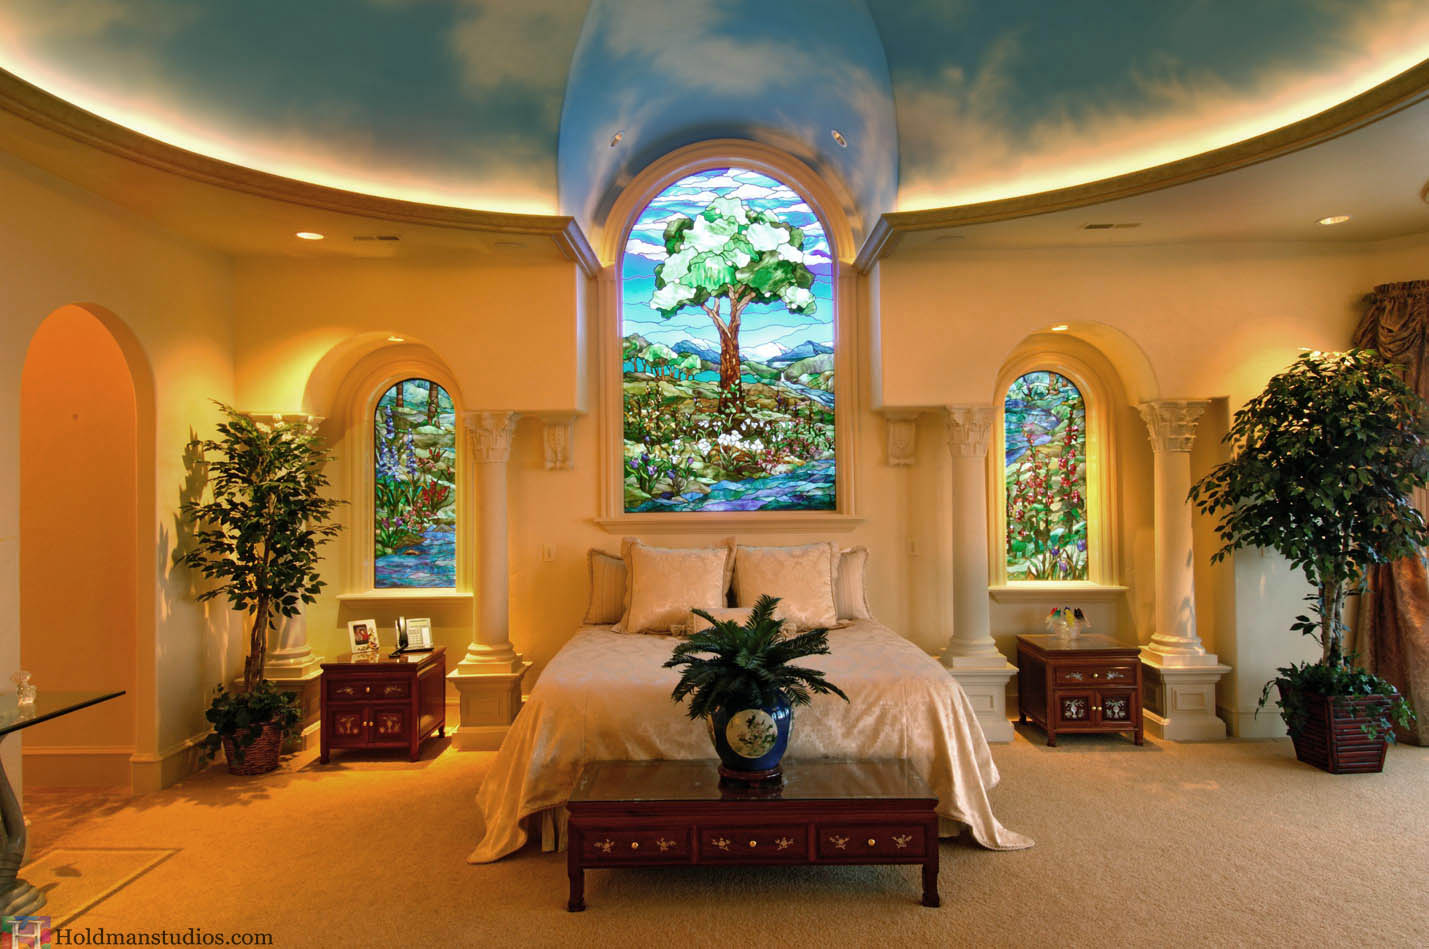 Stained Glass Bedroom windows with trees, river water, flowers, grass, mountains, and clouds in the sky.Created by artists under the direction of Tom Holdman at Holdman Studios.